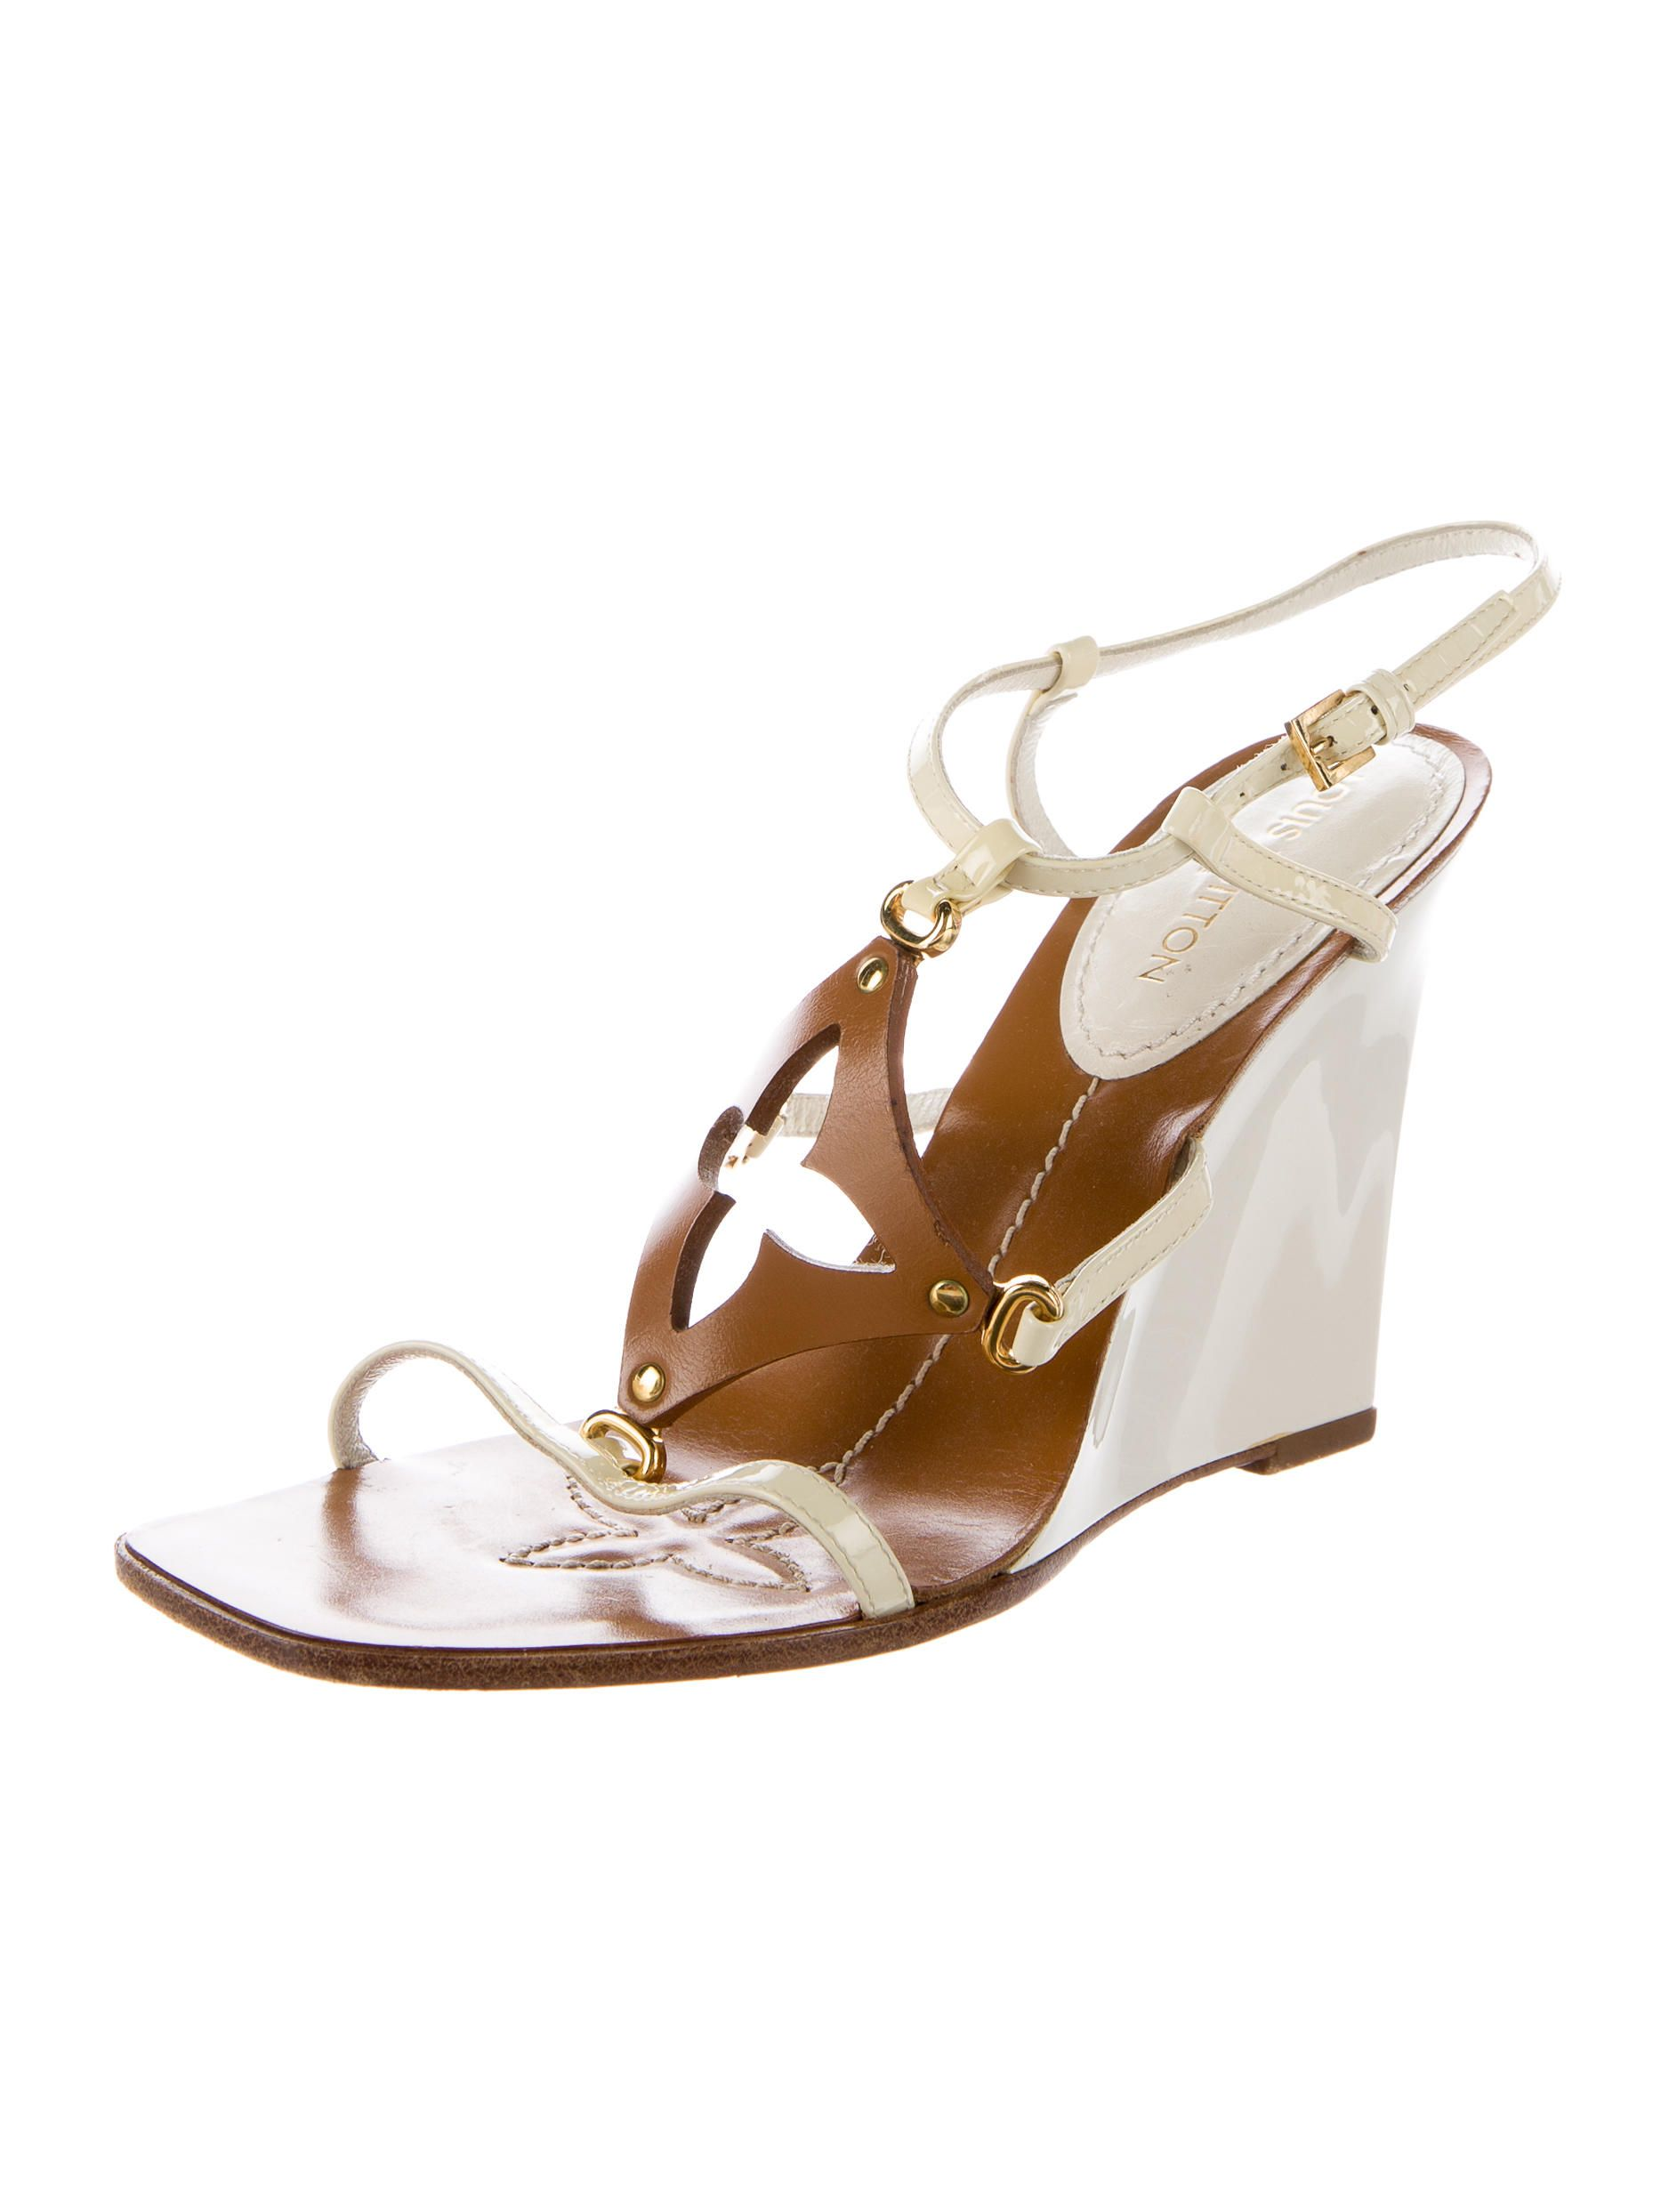 5a418f4eb4f0 White patent leather Louis Vuitton wedge sandals with gold-tone hardware